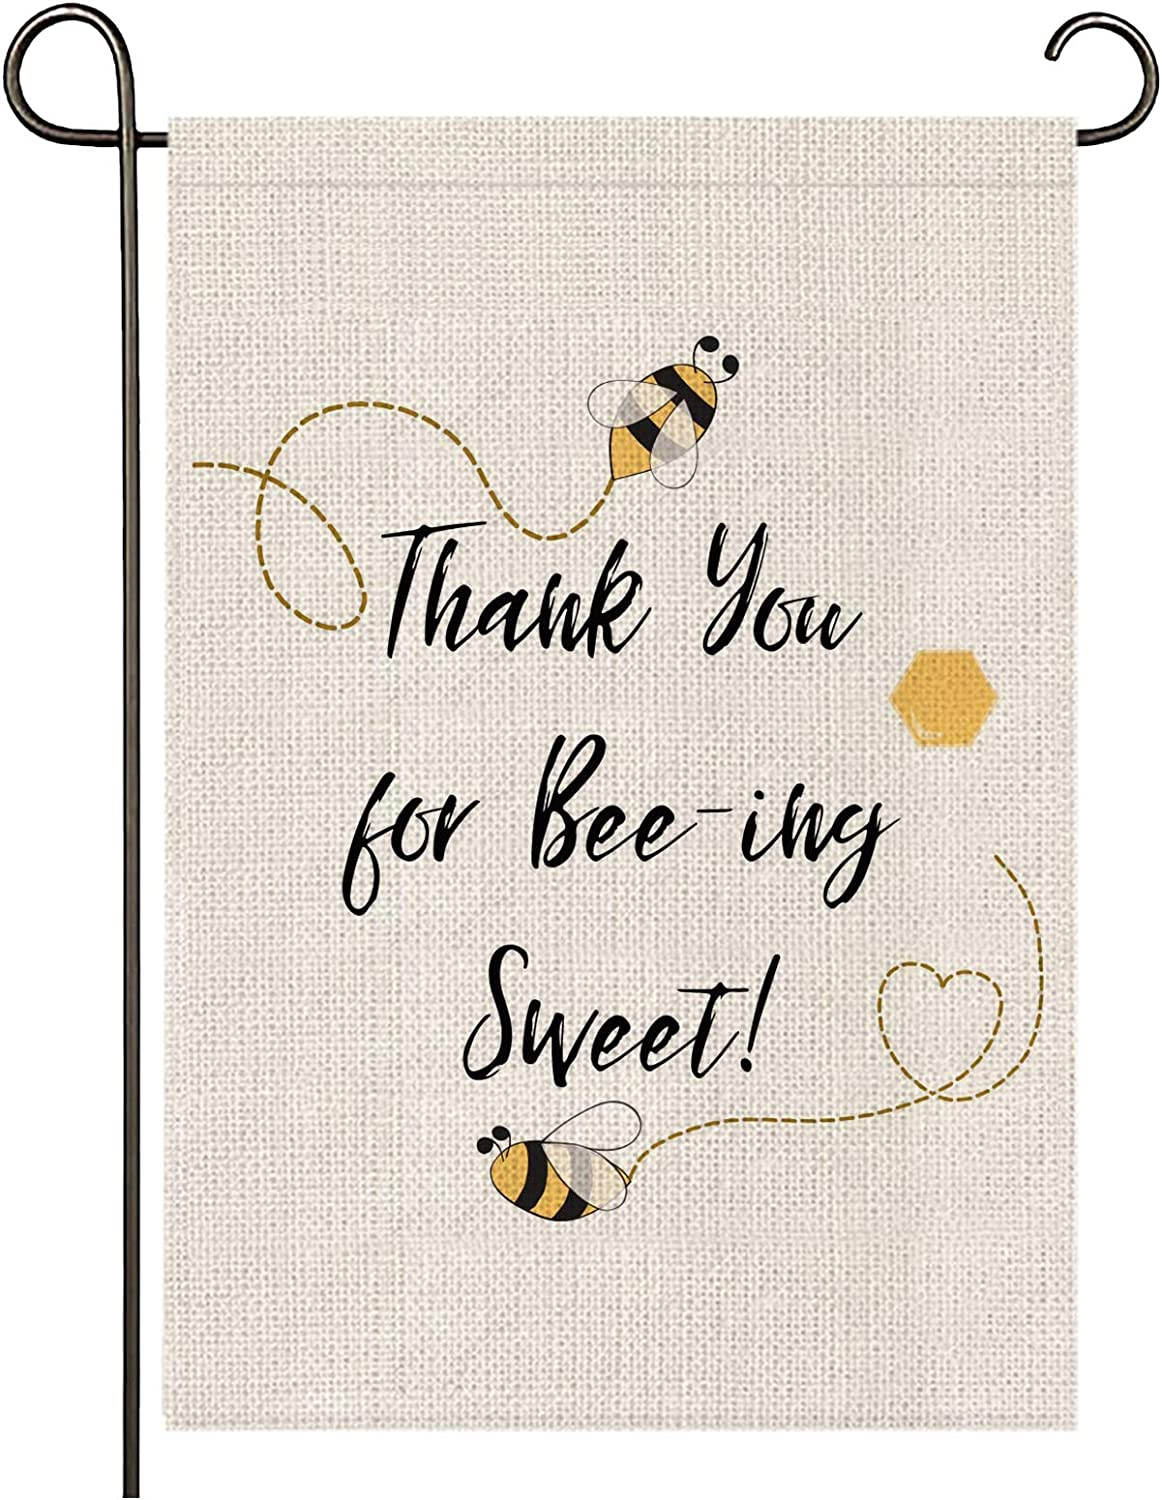 onetoze Bumble Bee Garden Flag Vertical Double Sided, 12.5X18inch Welcome Garden Flag, Premium Polyester Weather Proof for Yard Outdoor Decoration